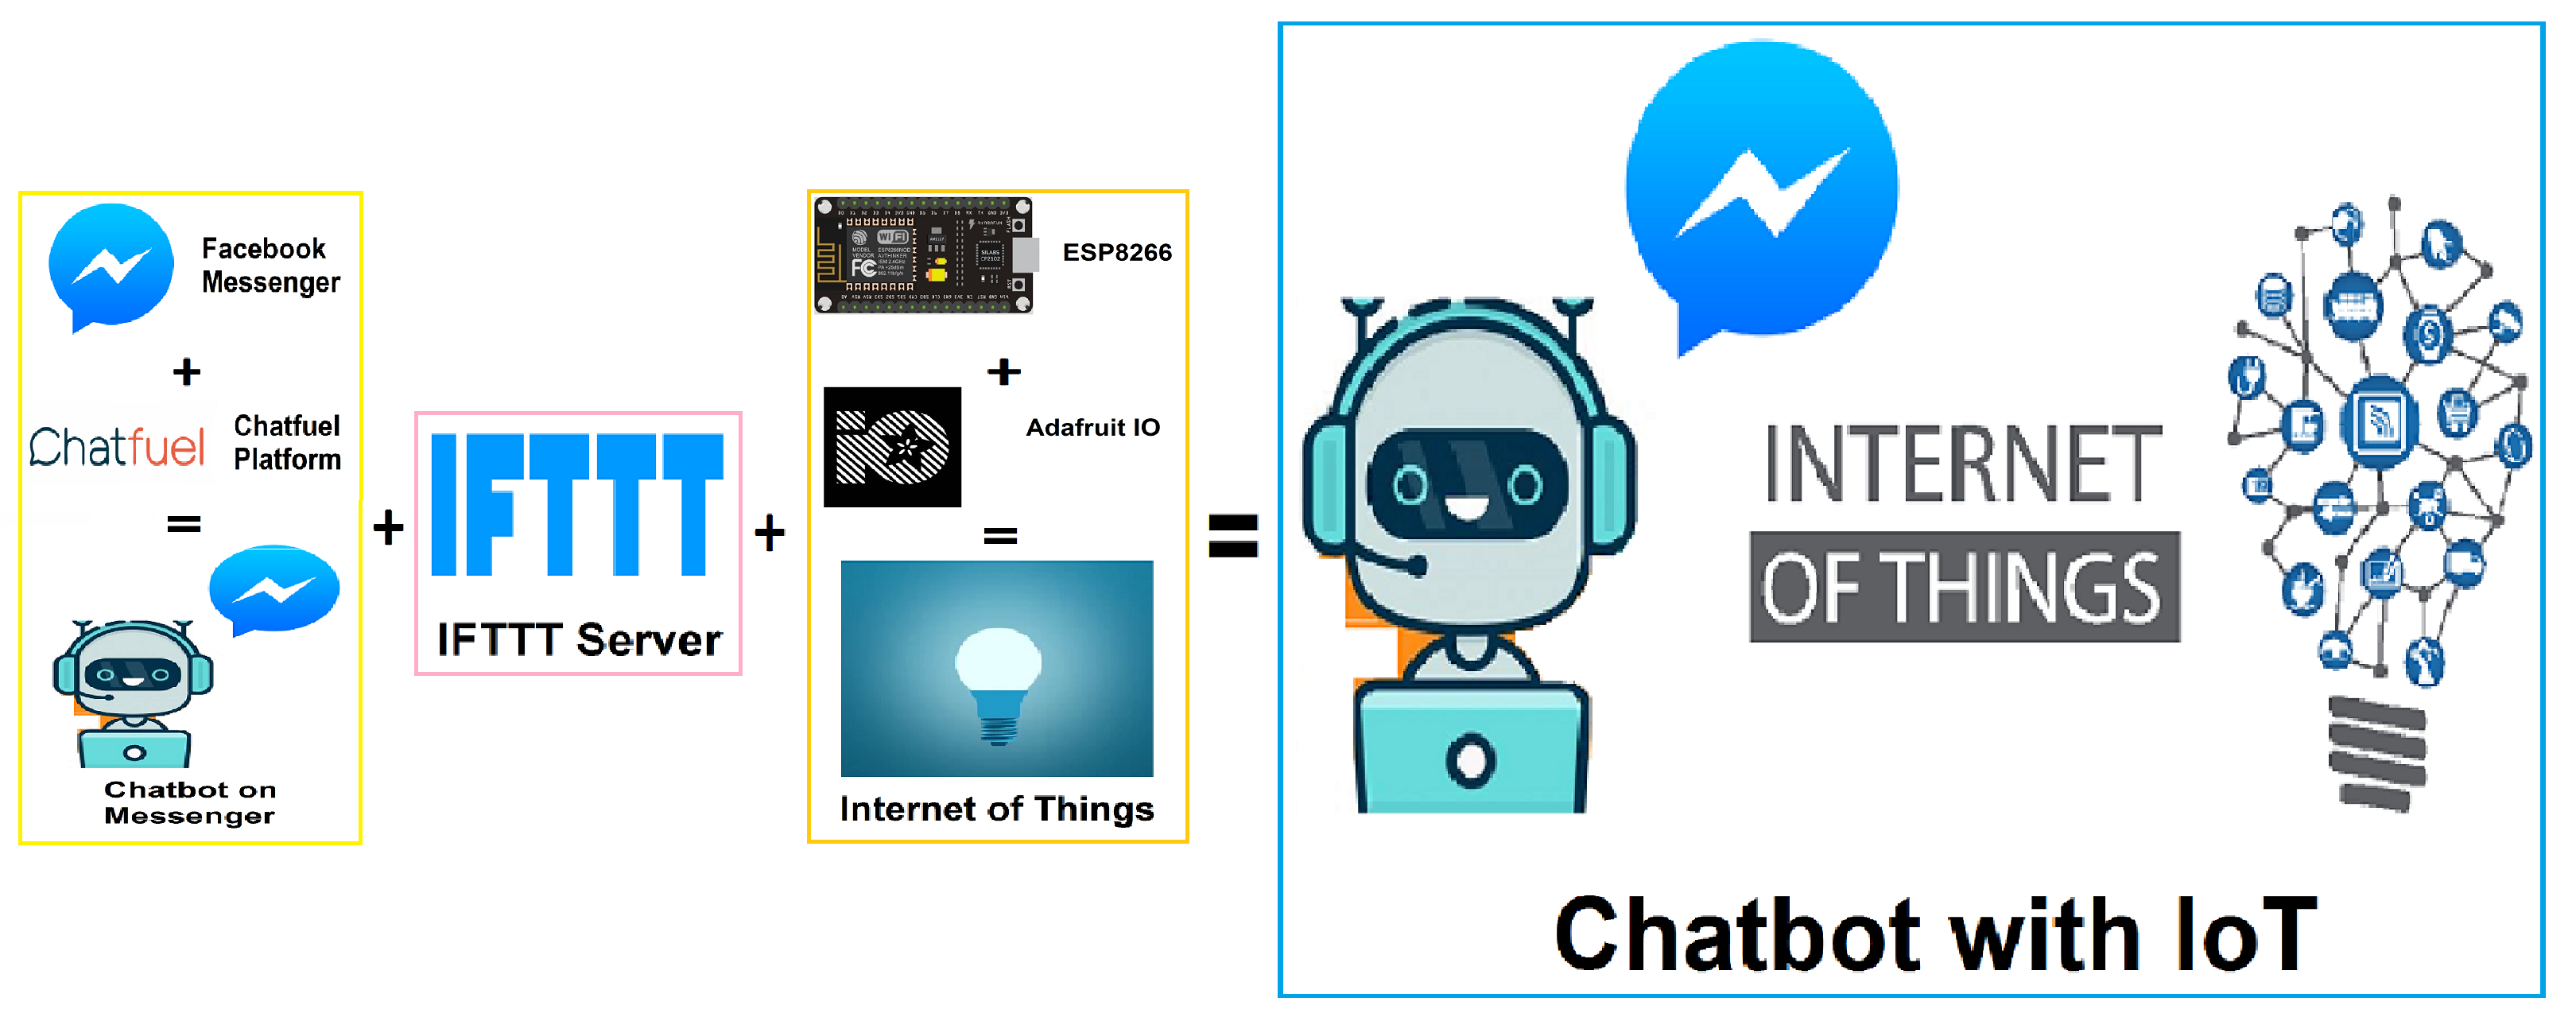 Complete Workflow of Chatbot with IoT